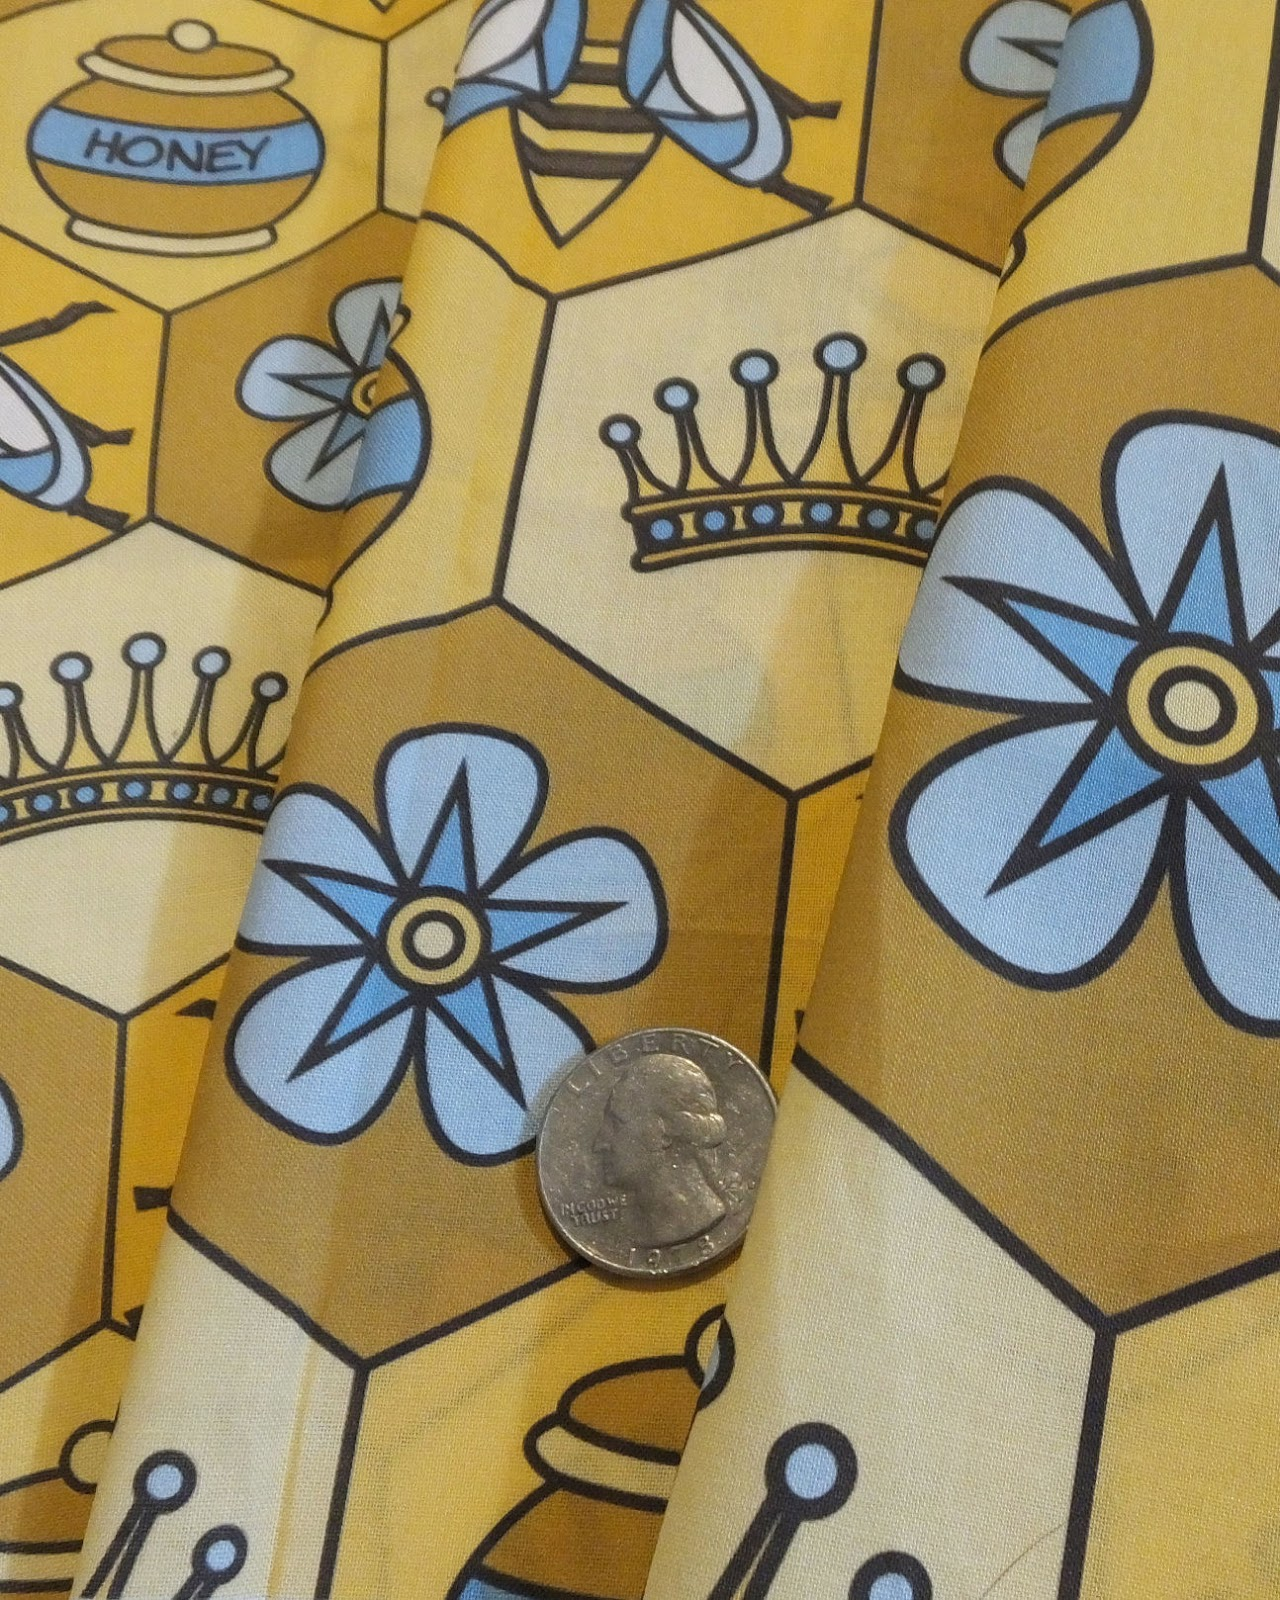 Bee fabric design